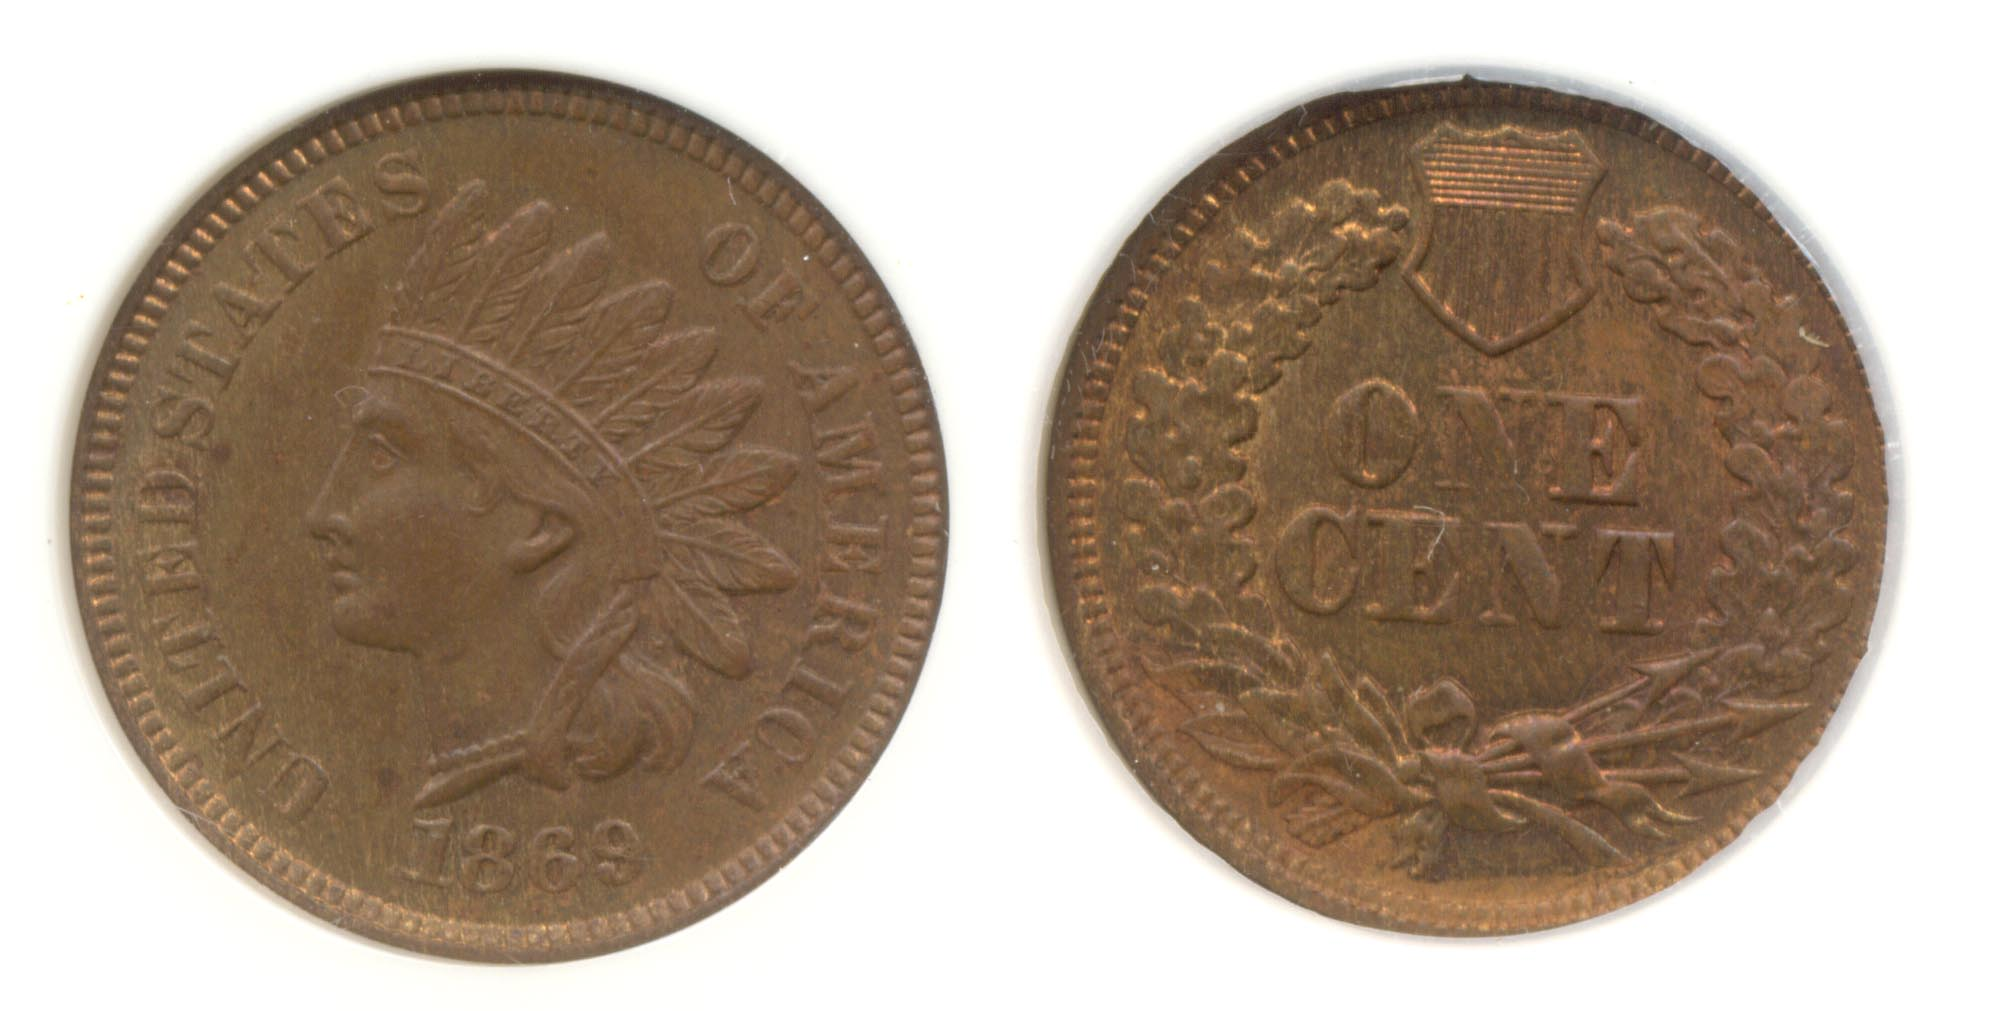 1869 Indian Head Cent NGC MS-65 Brown